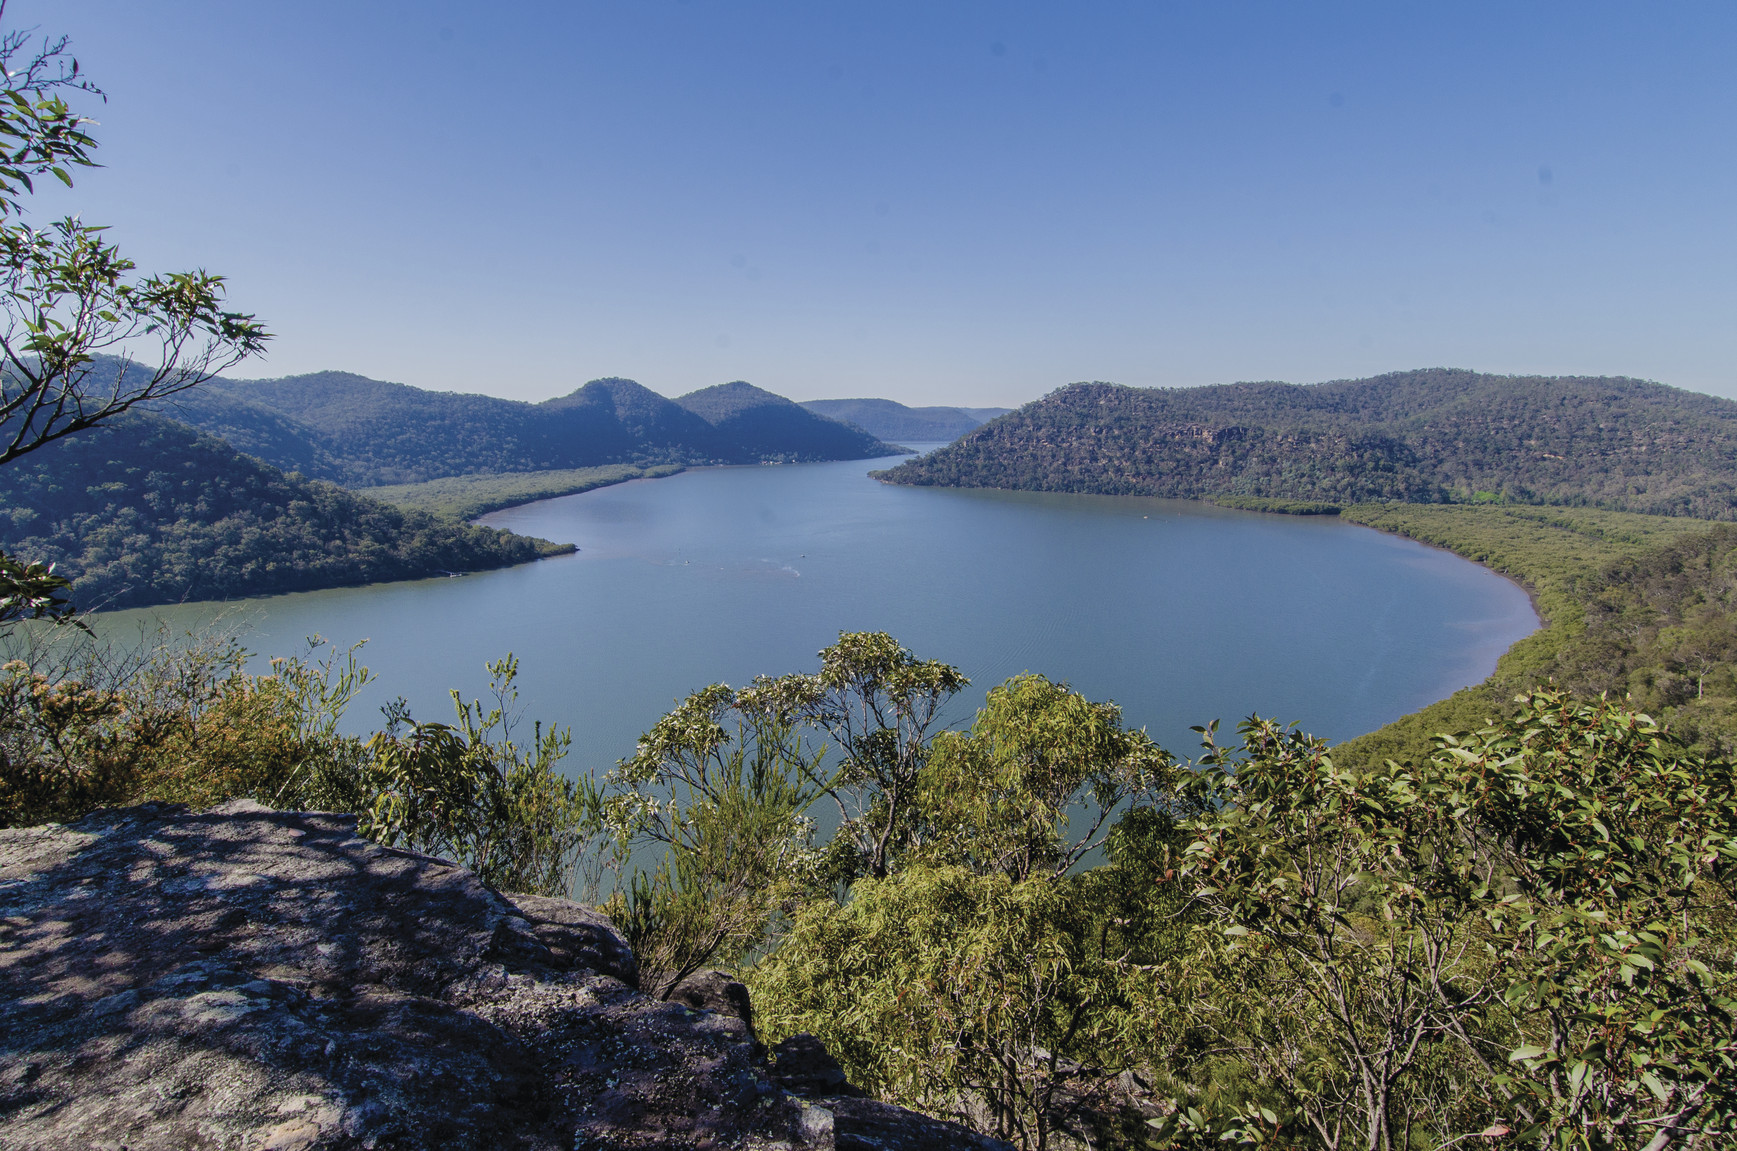 View of the Hawkesbury River from Marramarra National Park. Photo: John Spencer/OEH